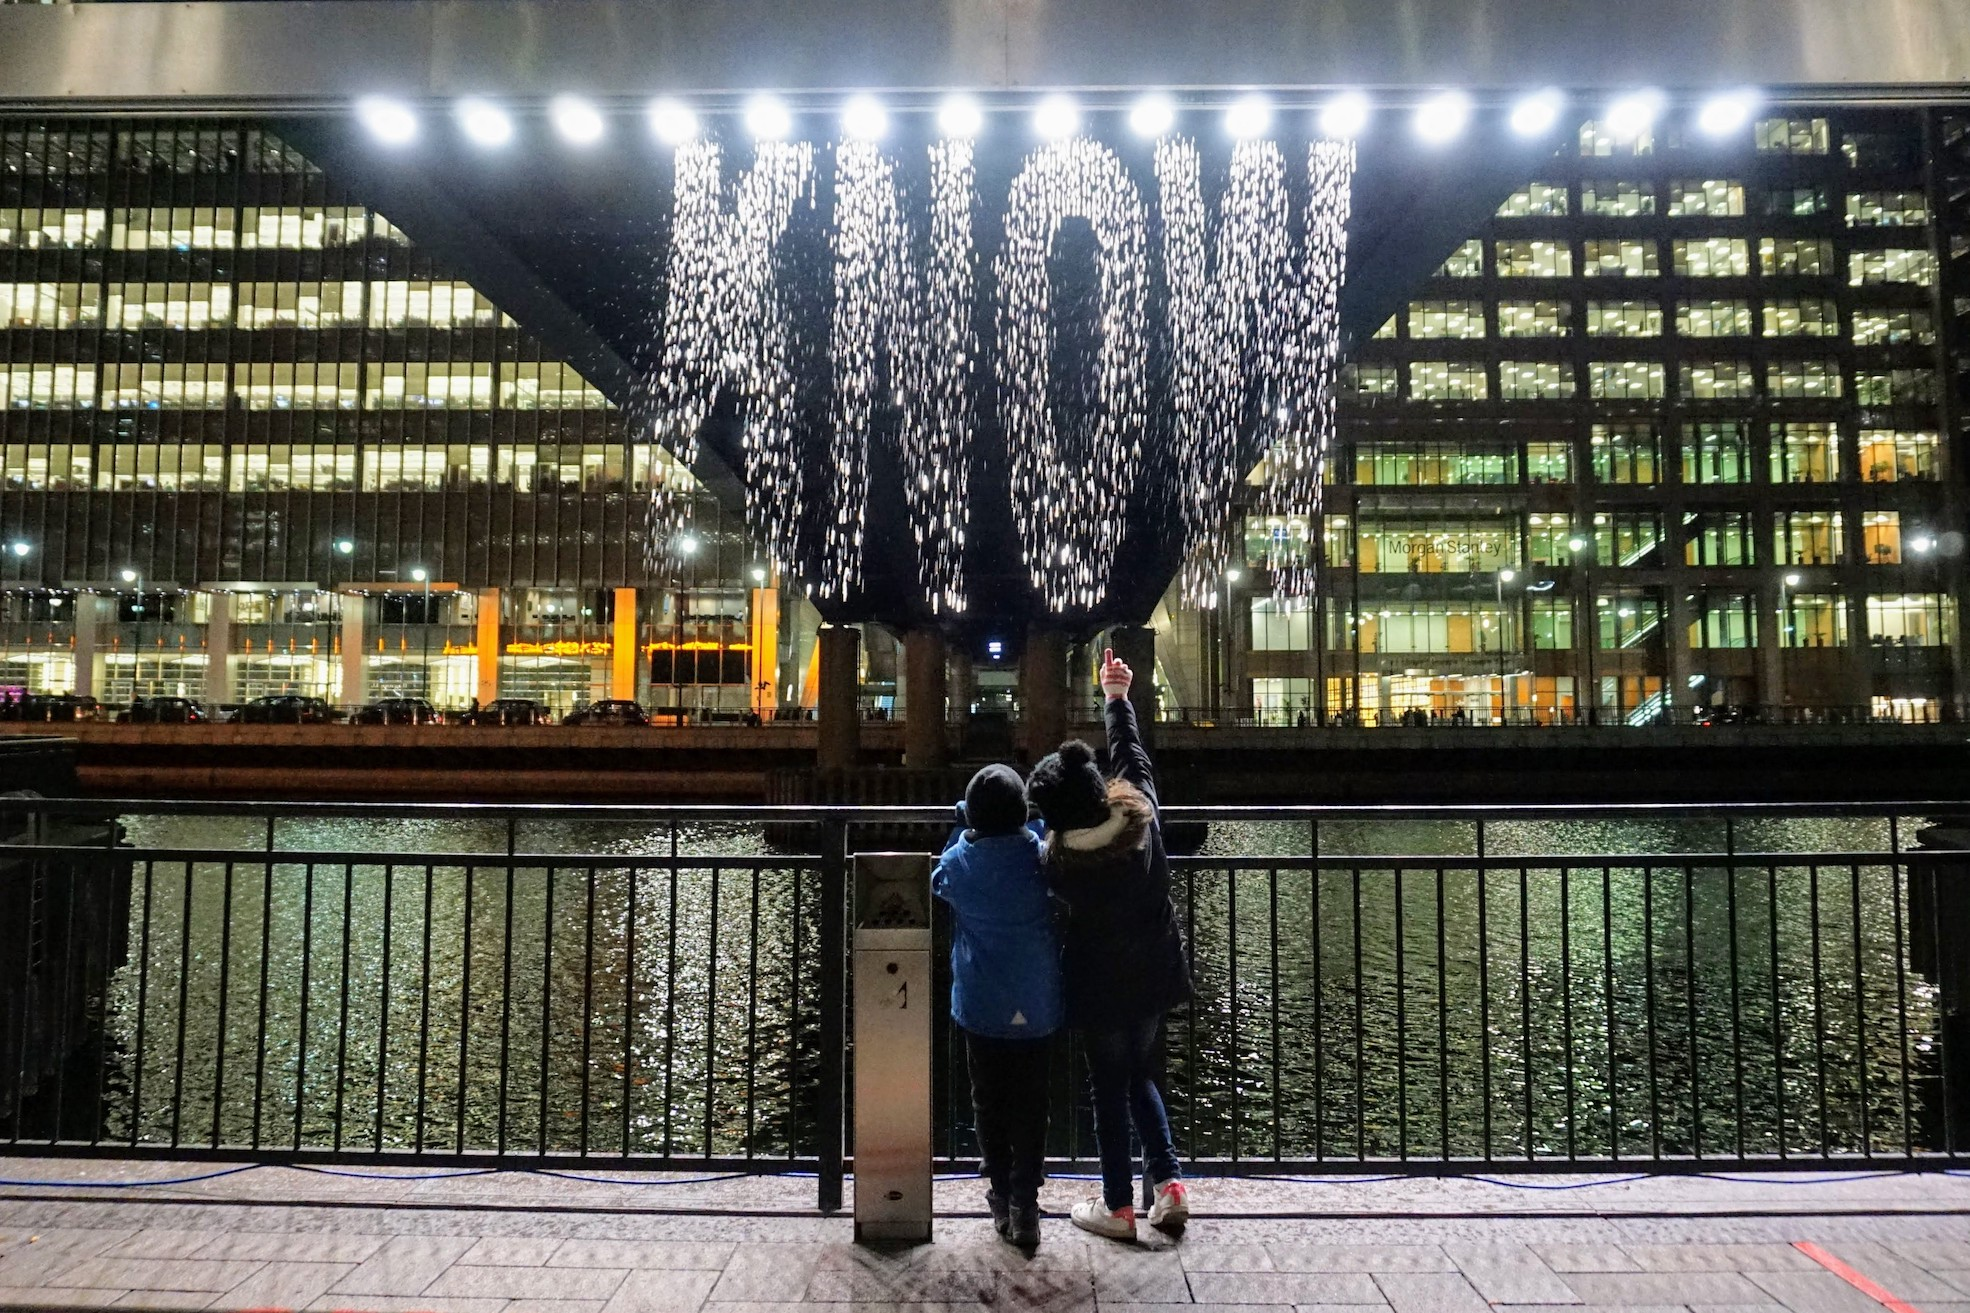 winter-lights-canary-wharf-2018-10